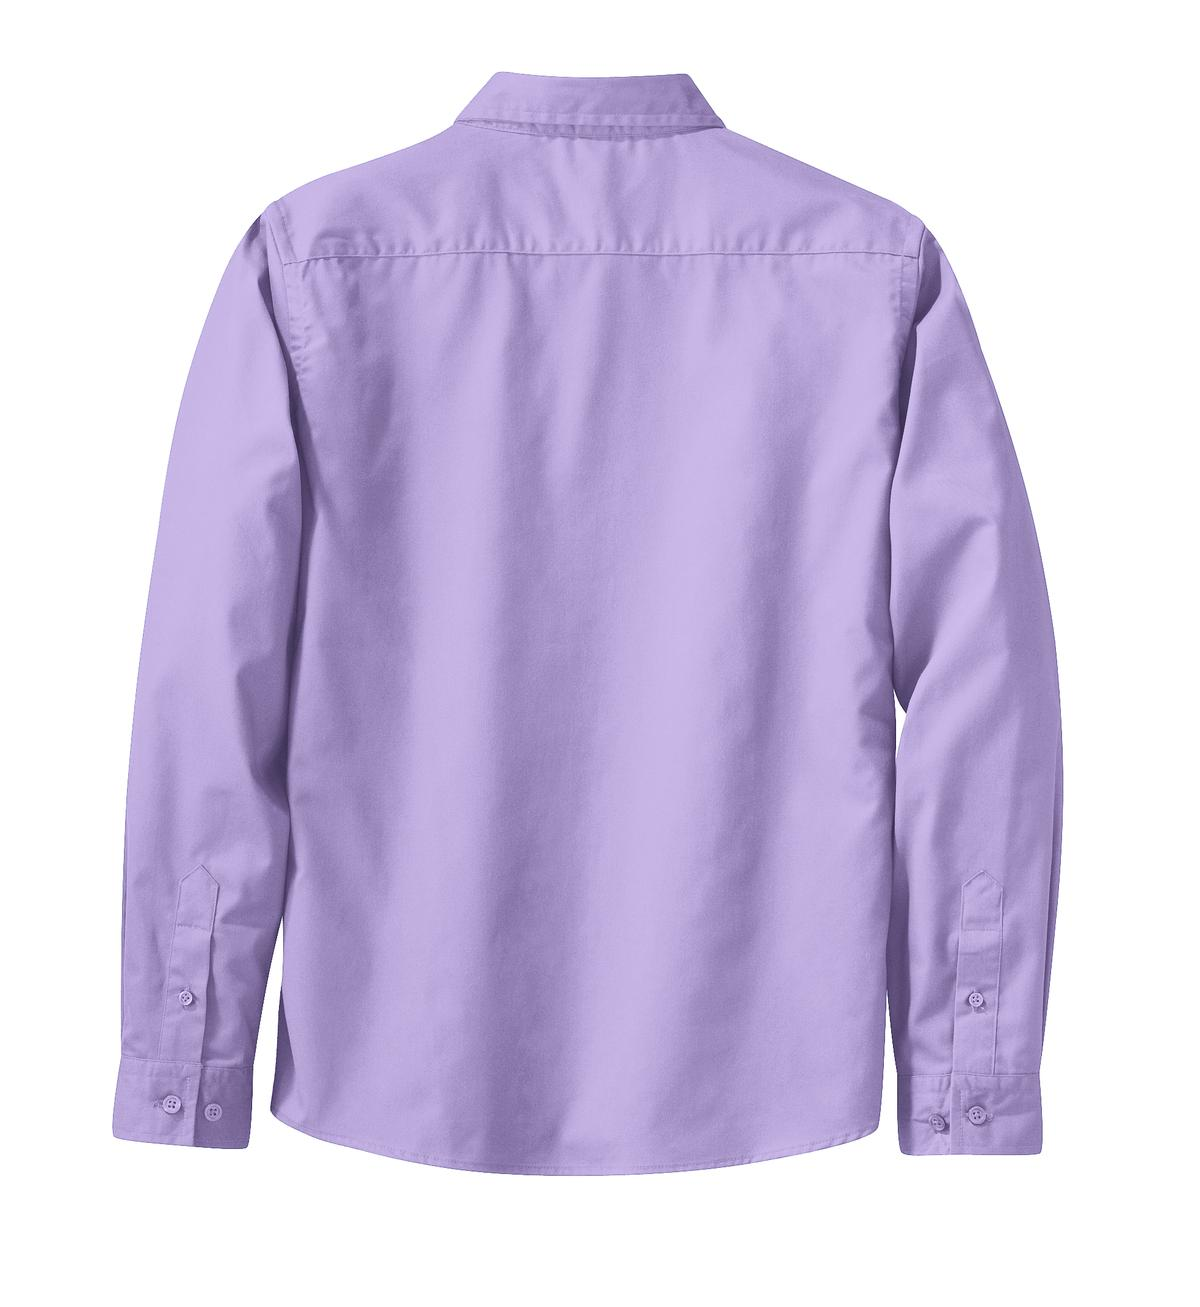 Mafoose Women's Long Sleeve Easy Care Shirt Bright Lavender-Back